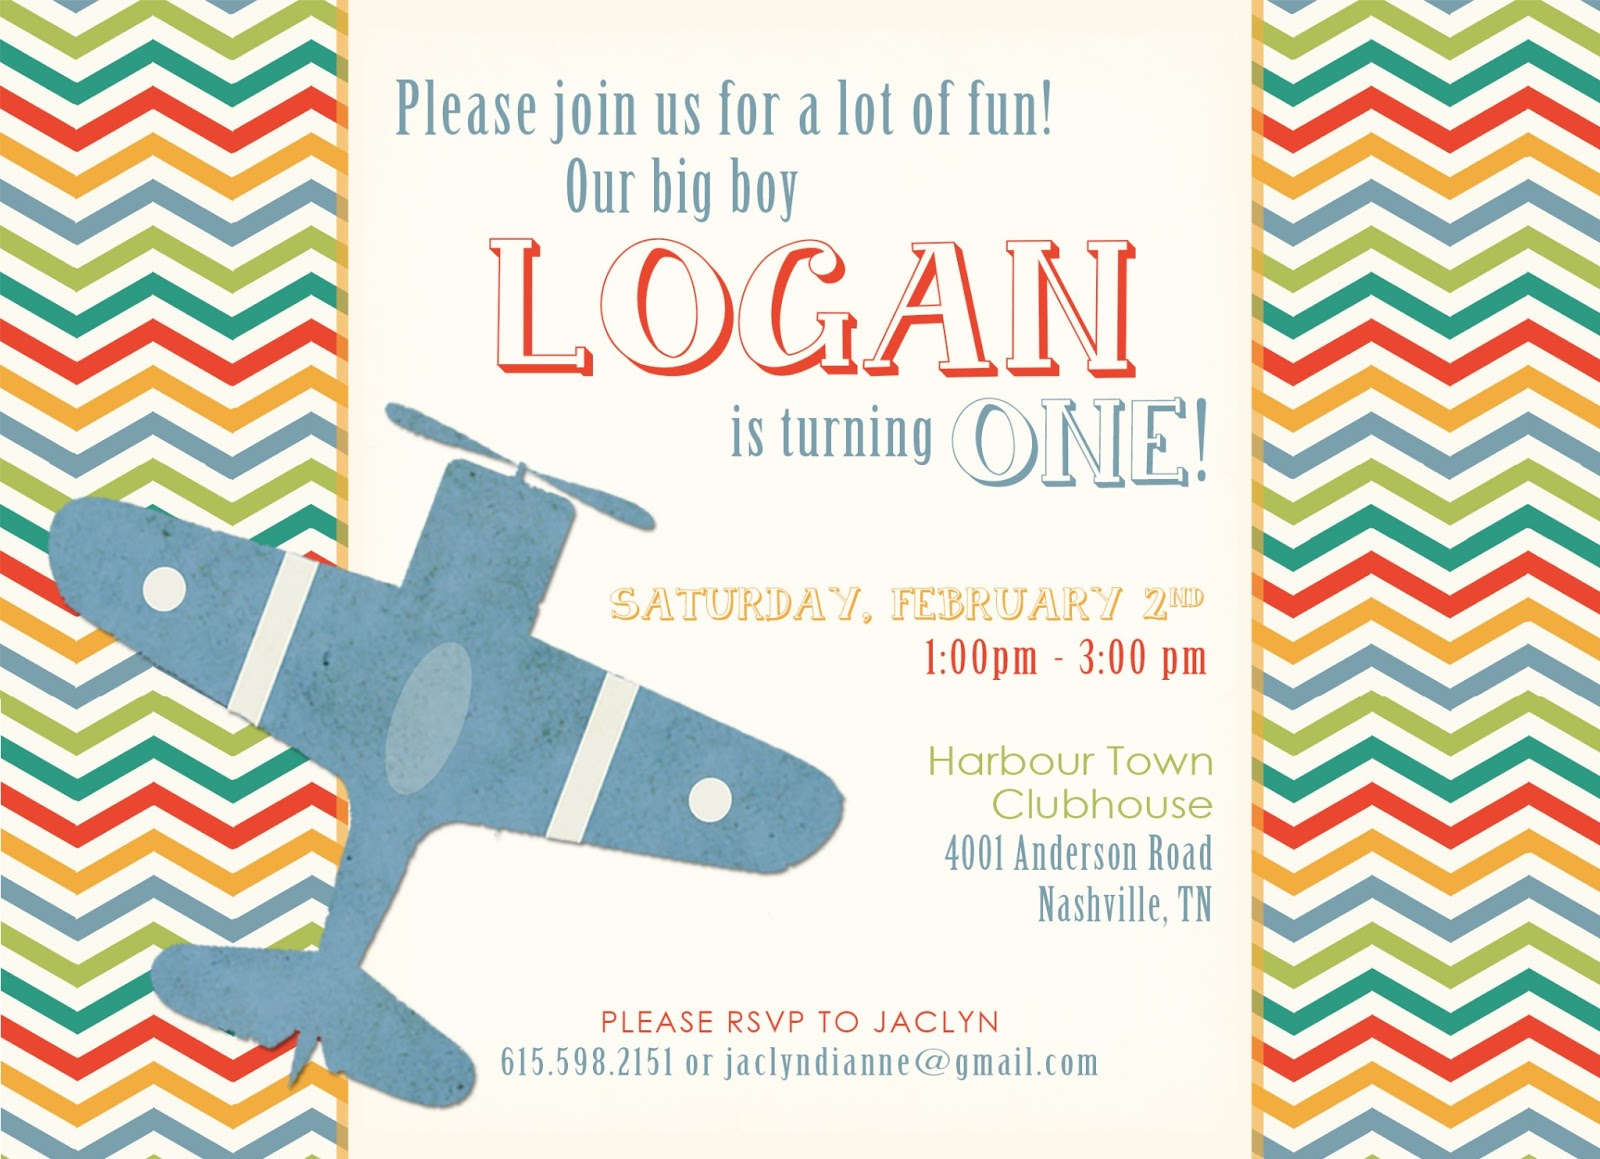 custom invitations from vintage sweet designs on etsy